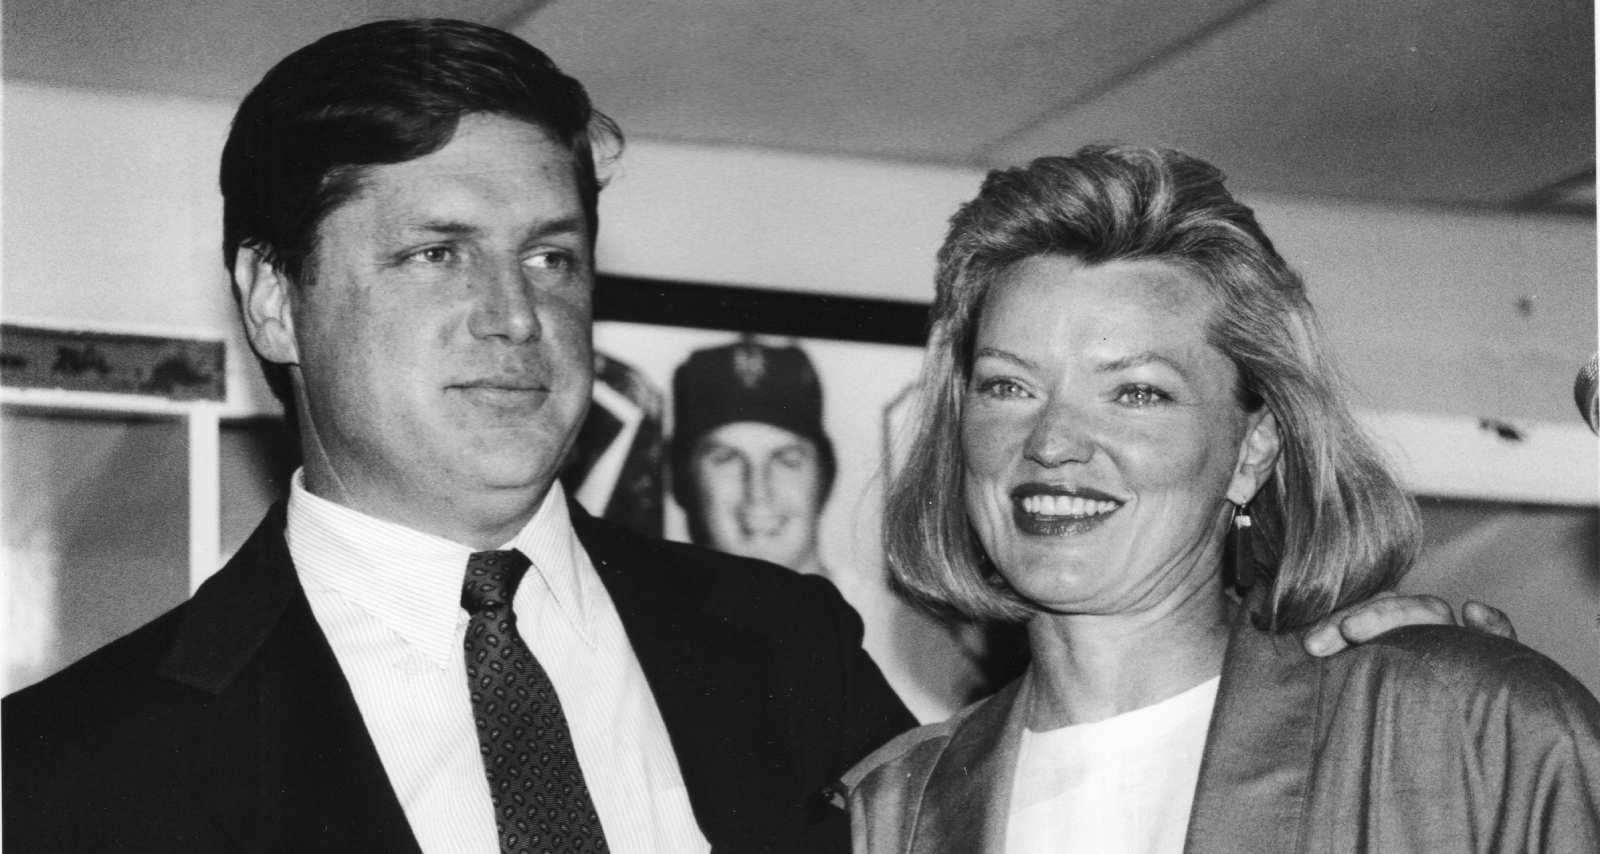 Nancy Seaver Wiki, Age, Family, Parents, Kids, Wedding and Facts about Tom Seaver's Wife